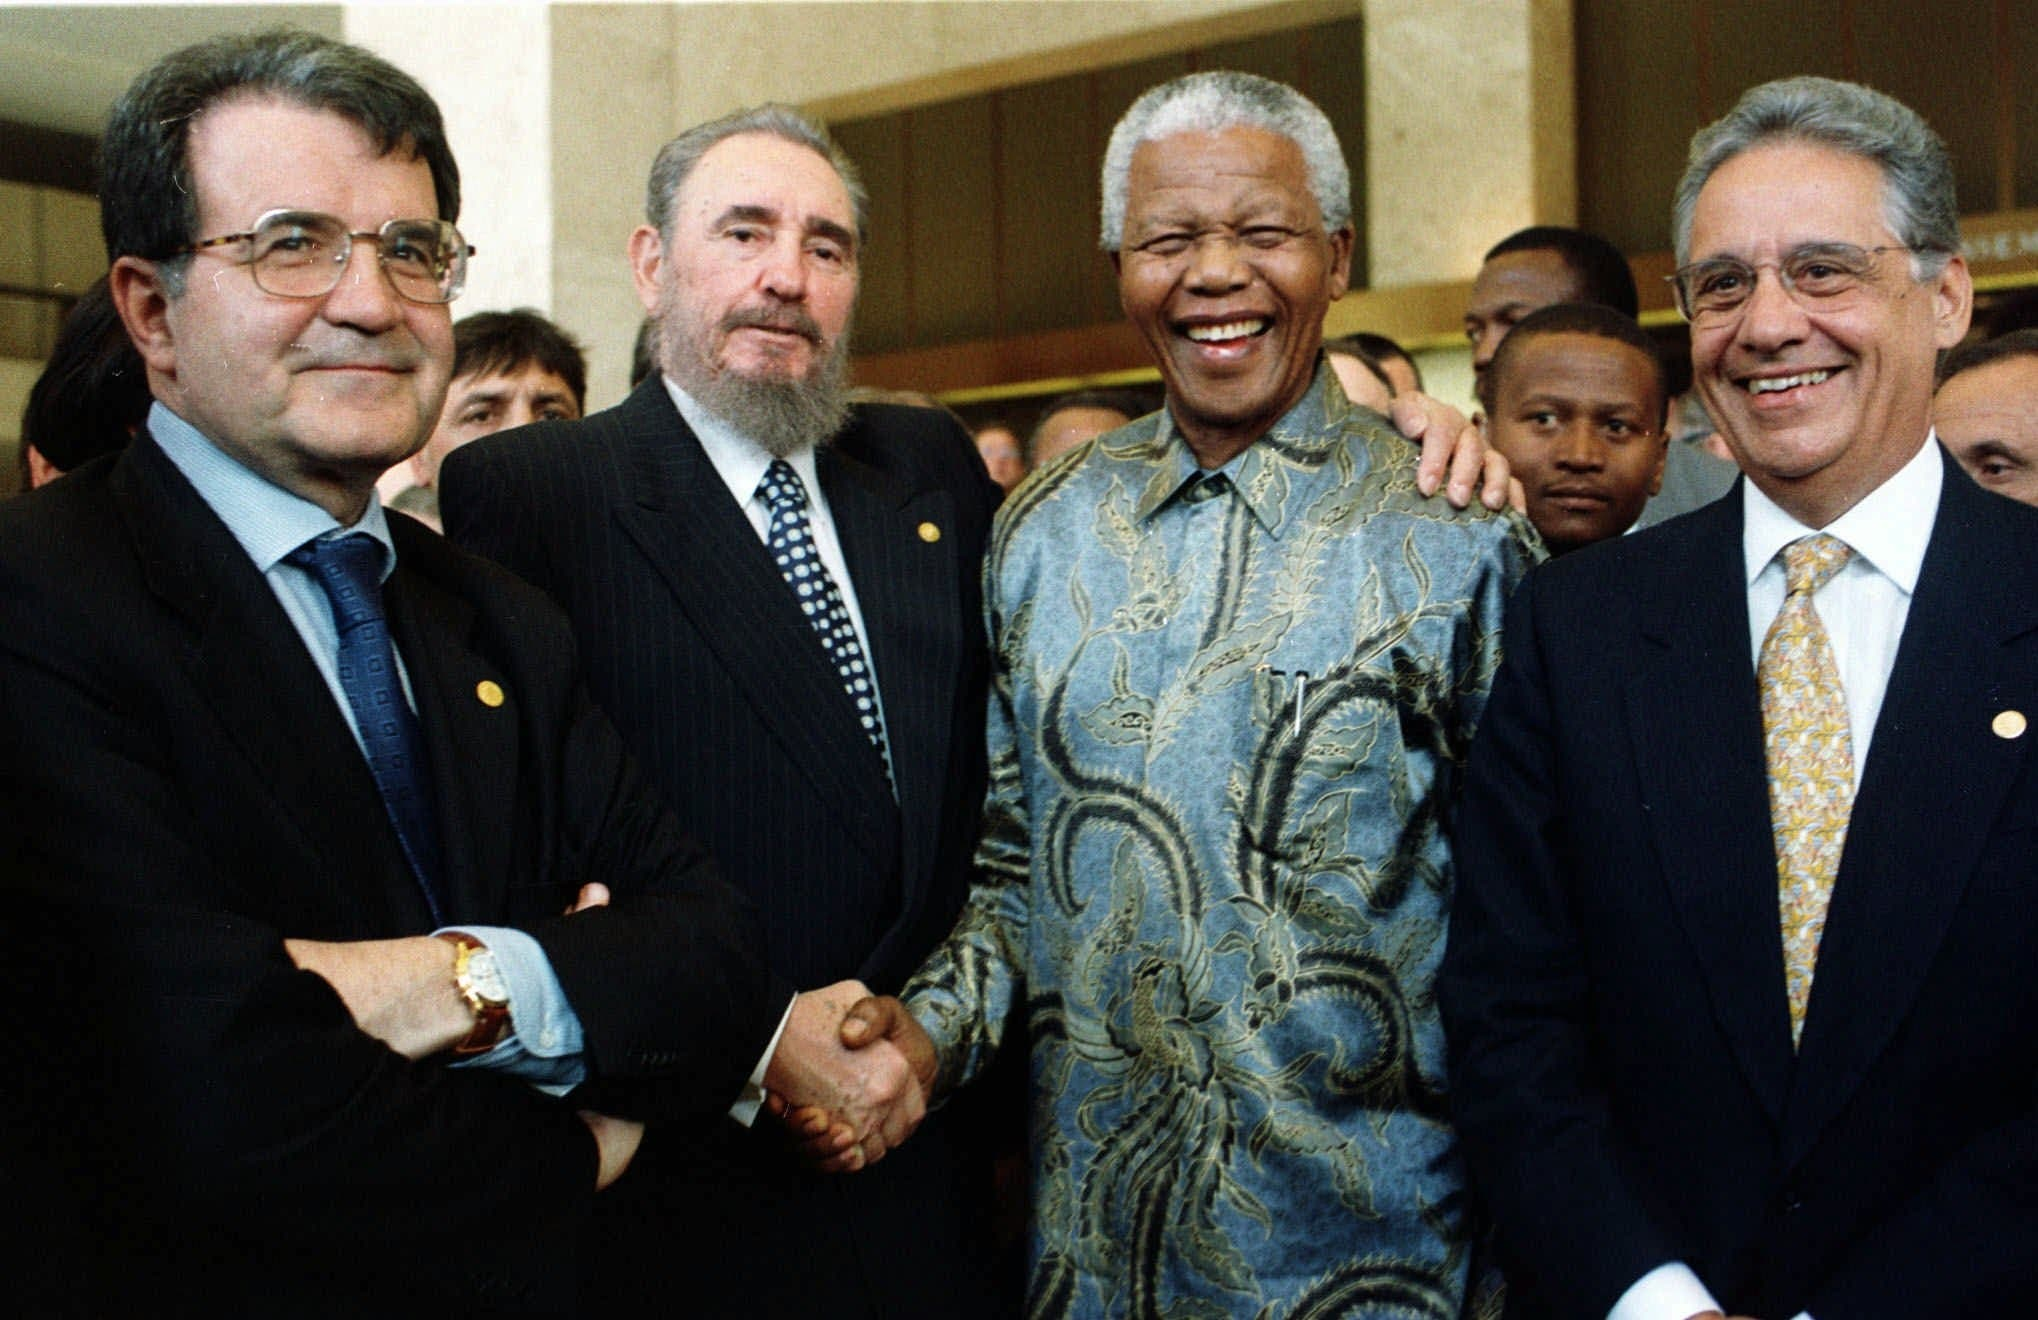 Cuban President Fidel Castro, second left, shakes the hand of a laughing Nelson Mandela, as Italian Prime Minister Romano Prodi, 1st left, and Brazilian President Fernando Henrique Cardoso, right, look on at the 50th anniversary ceremony of the GATT Agreement, during the ministerial conference of the WTO (World Trade Organisation) held in Geneva,Tuesday May 19, 1998. (AP)